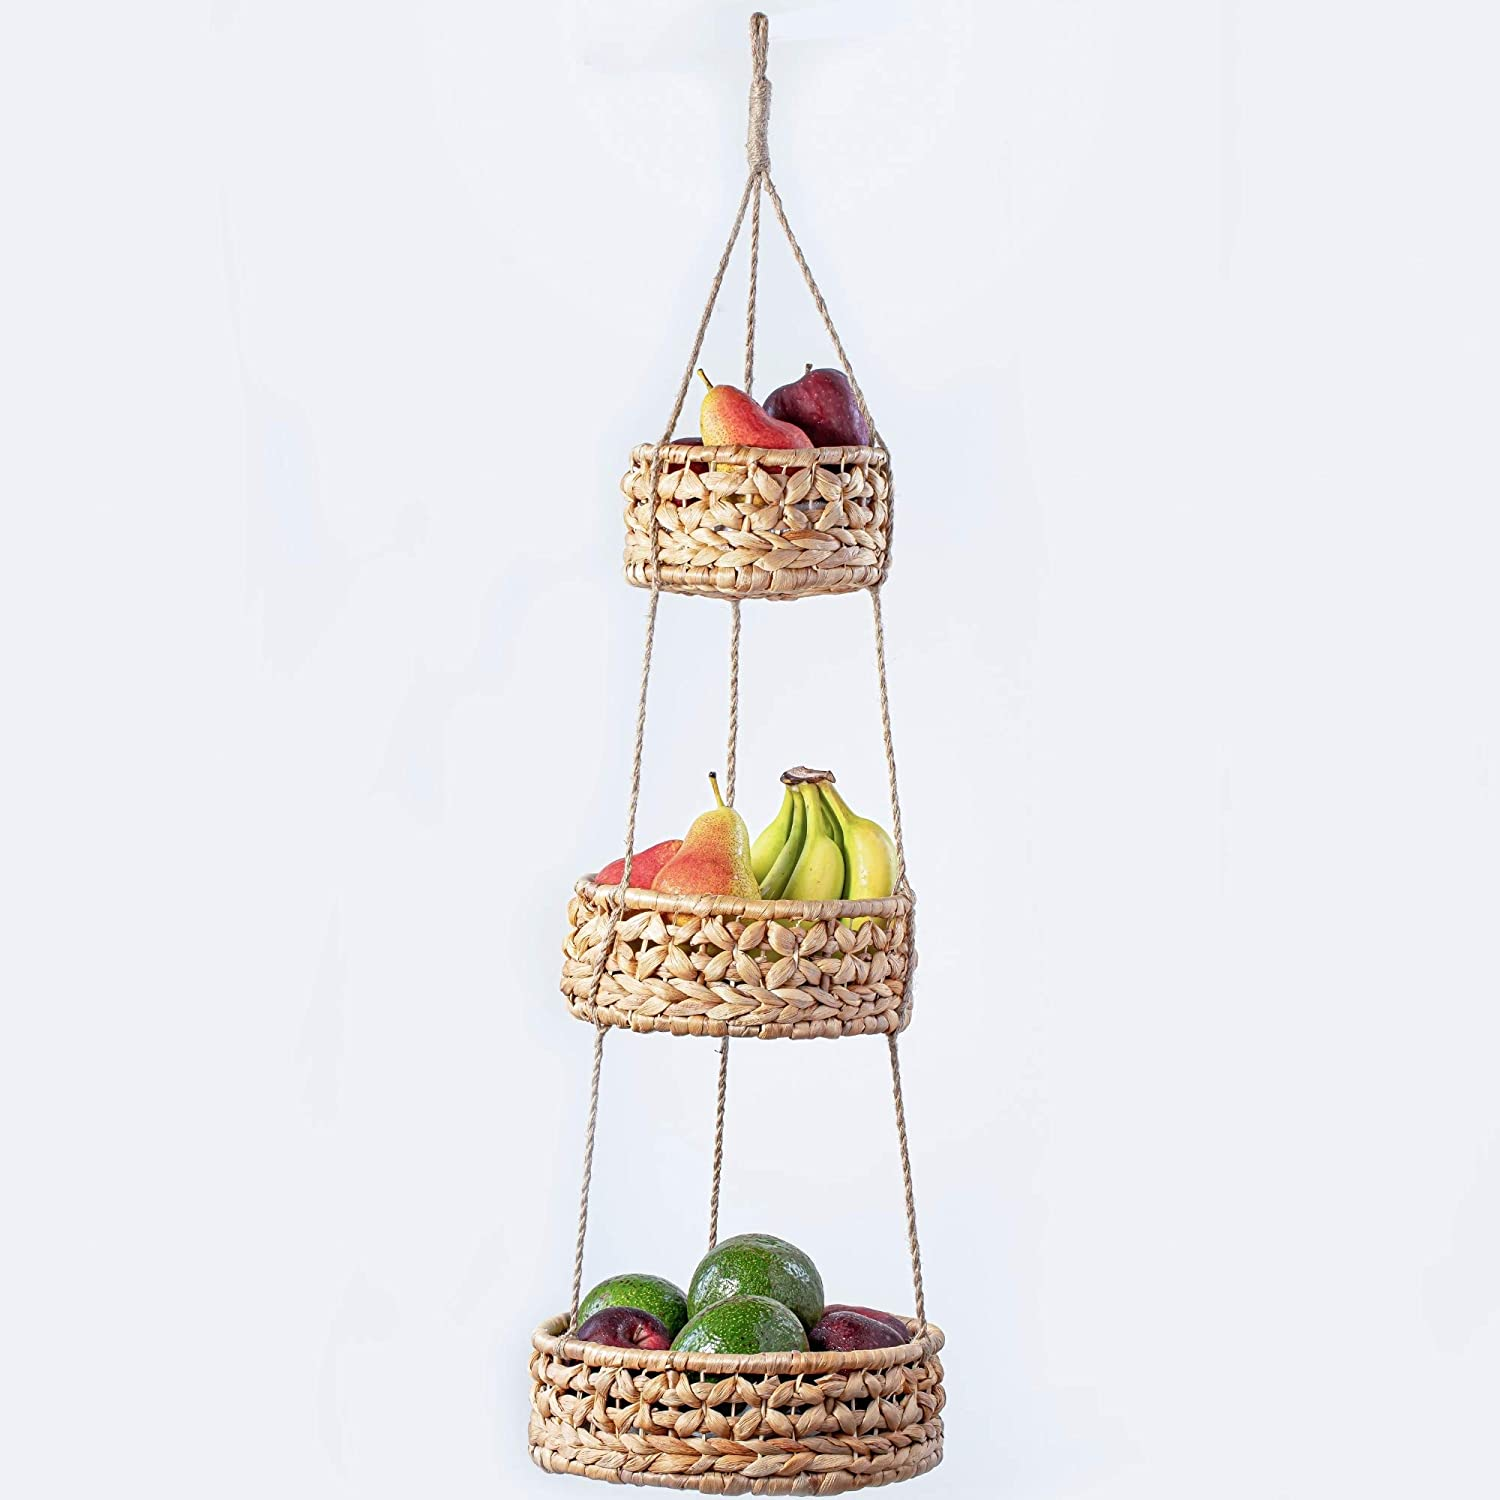 3 Tier Hanging Basket | Natural Woven Seagrass Wicker Baskets | Kitchen Fruit Storage Organizer | Plant Holder | Handmade Modern Boho Home Decor | Countertop Space Saver for Fruits or Vegetables